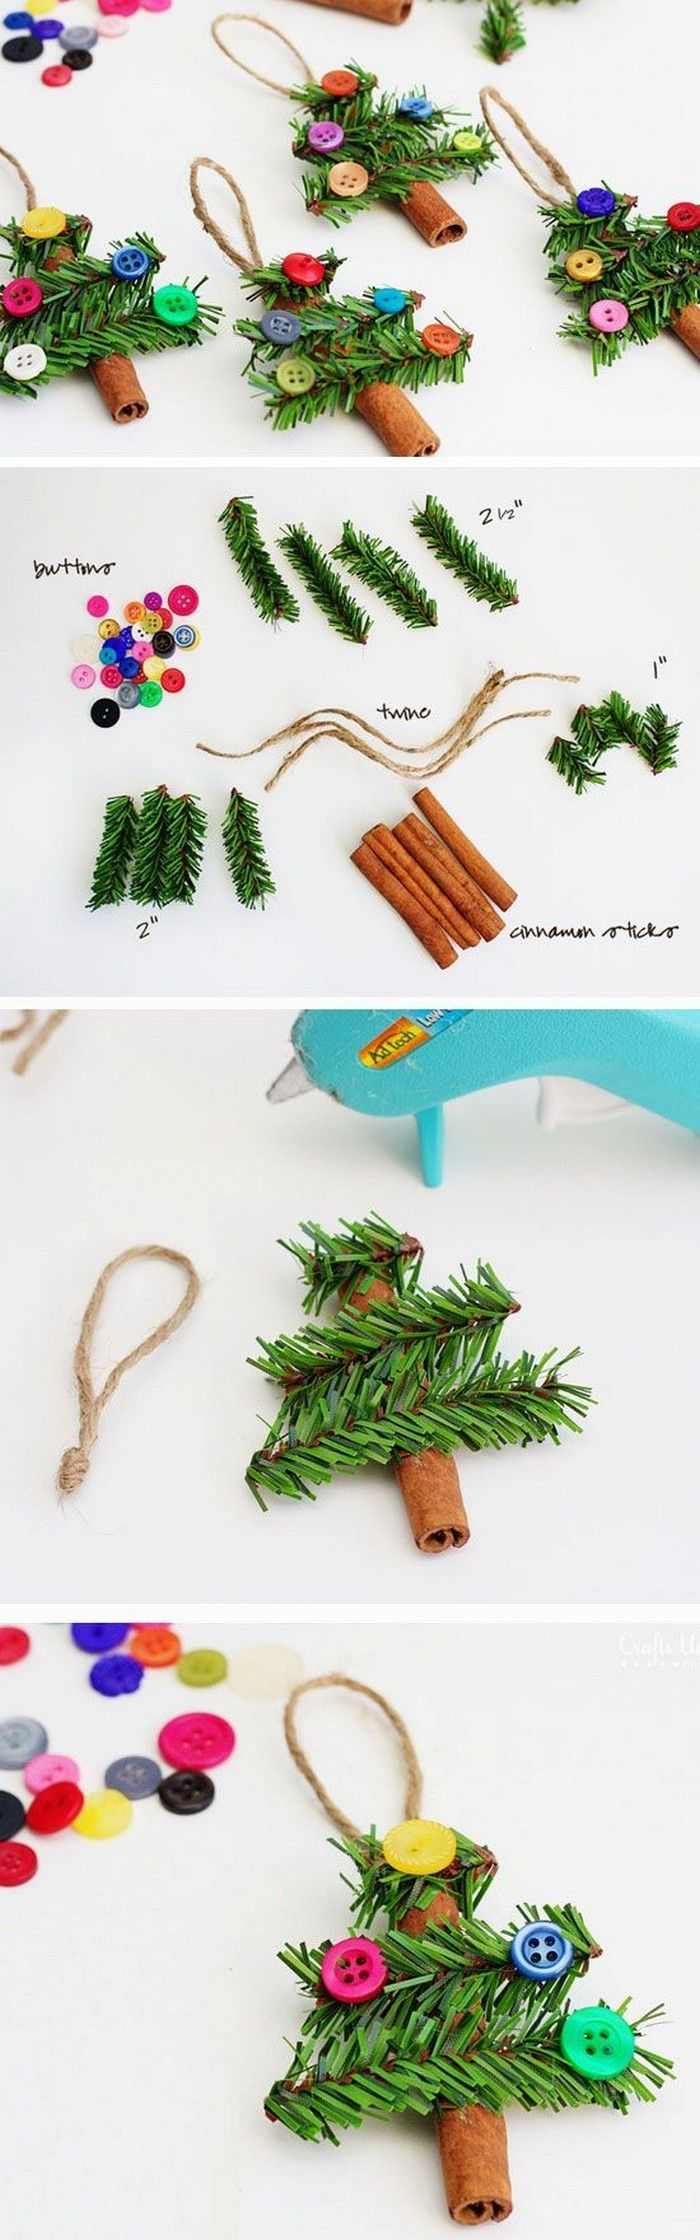 Cinnamon Stick Tree Ornaments:Keeping in mind the importance of easy Christmas crafts I have made the collection of 25 interesting ideas to make easy Christmas crafts.